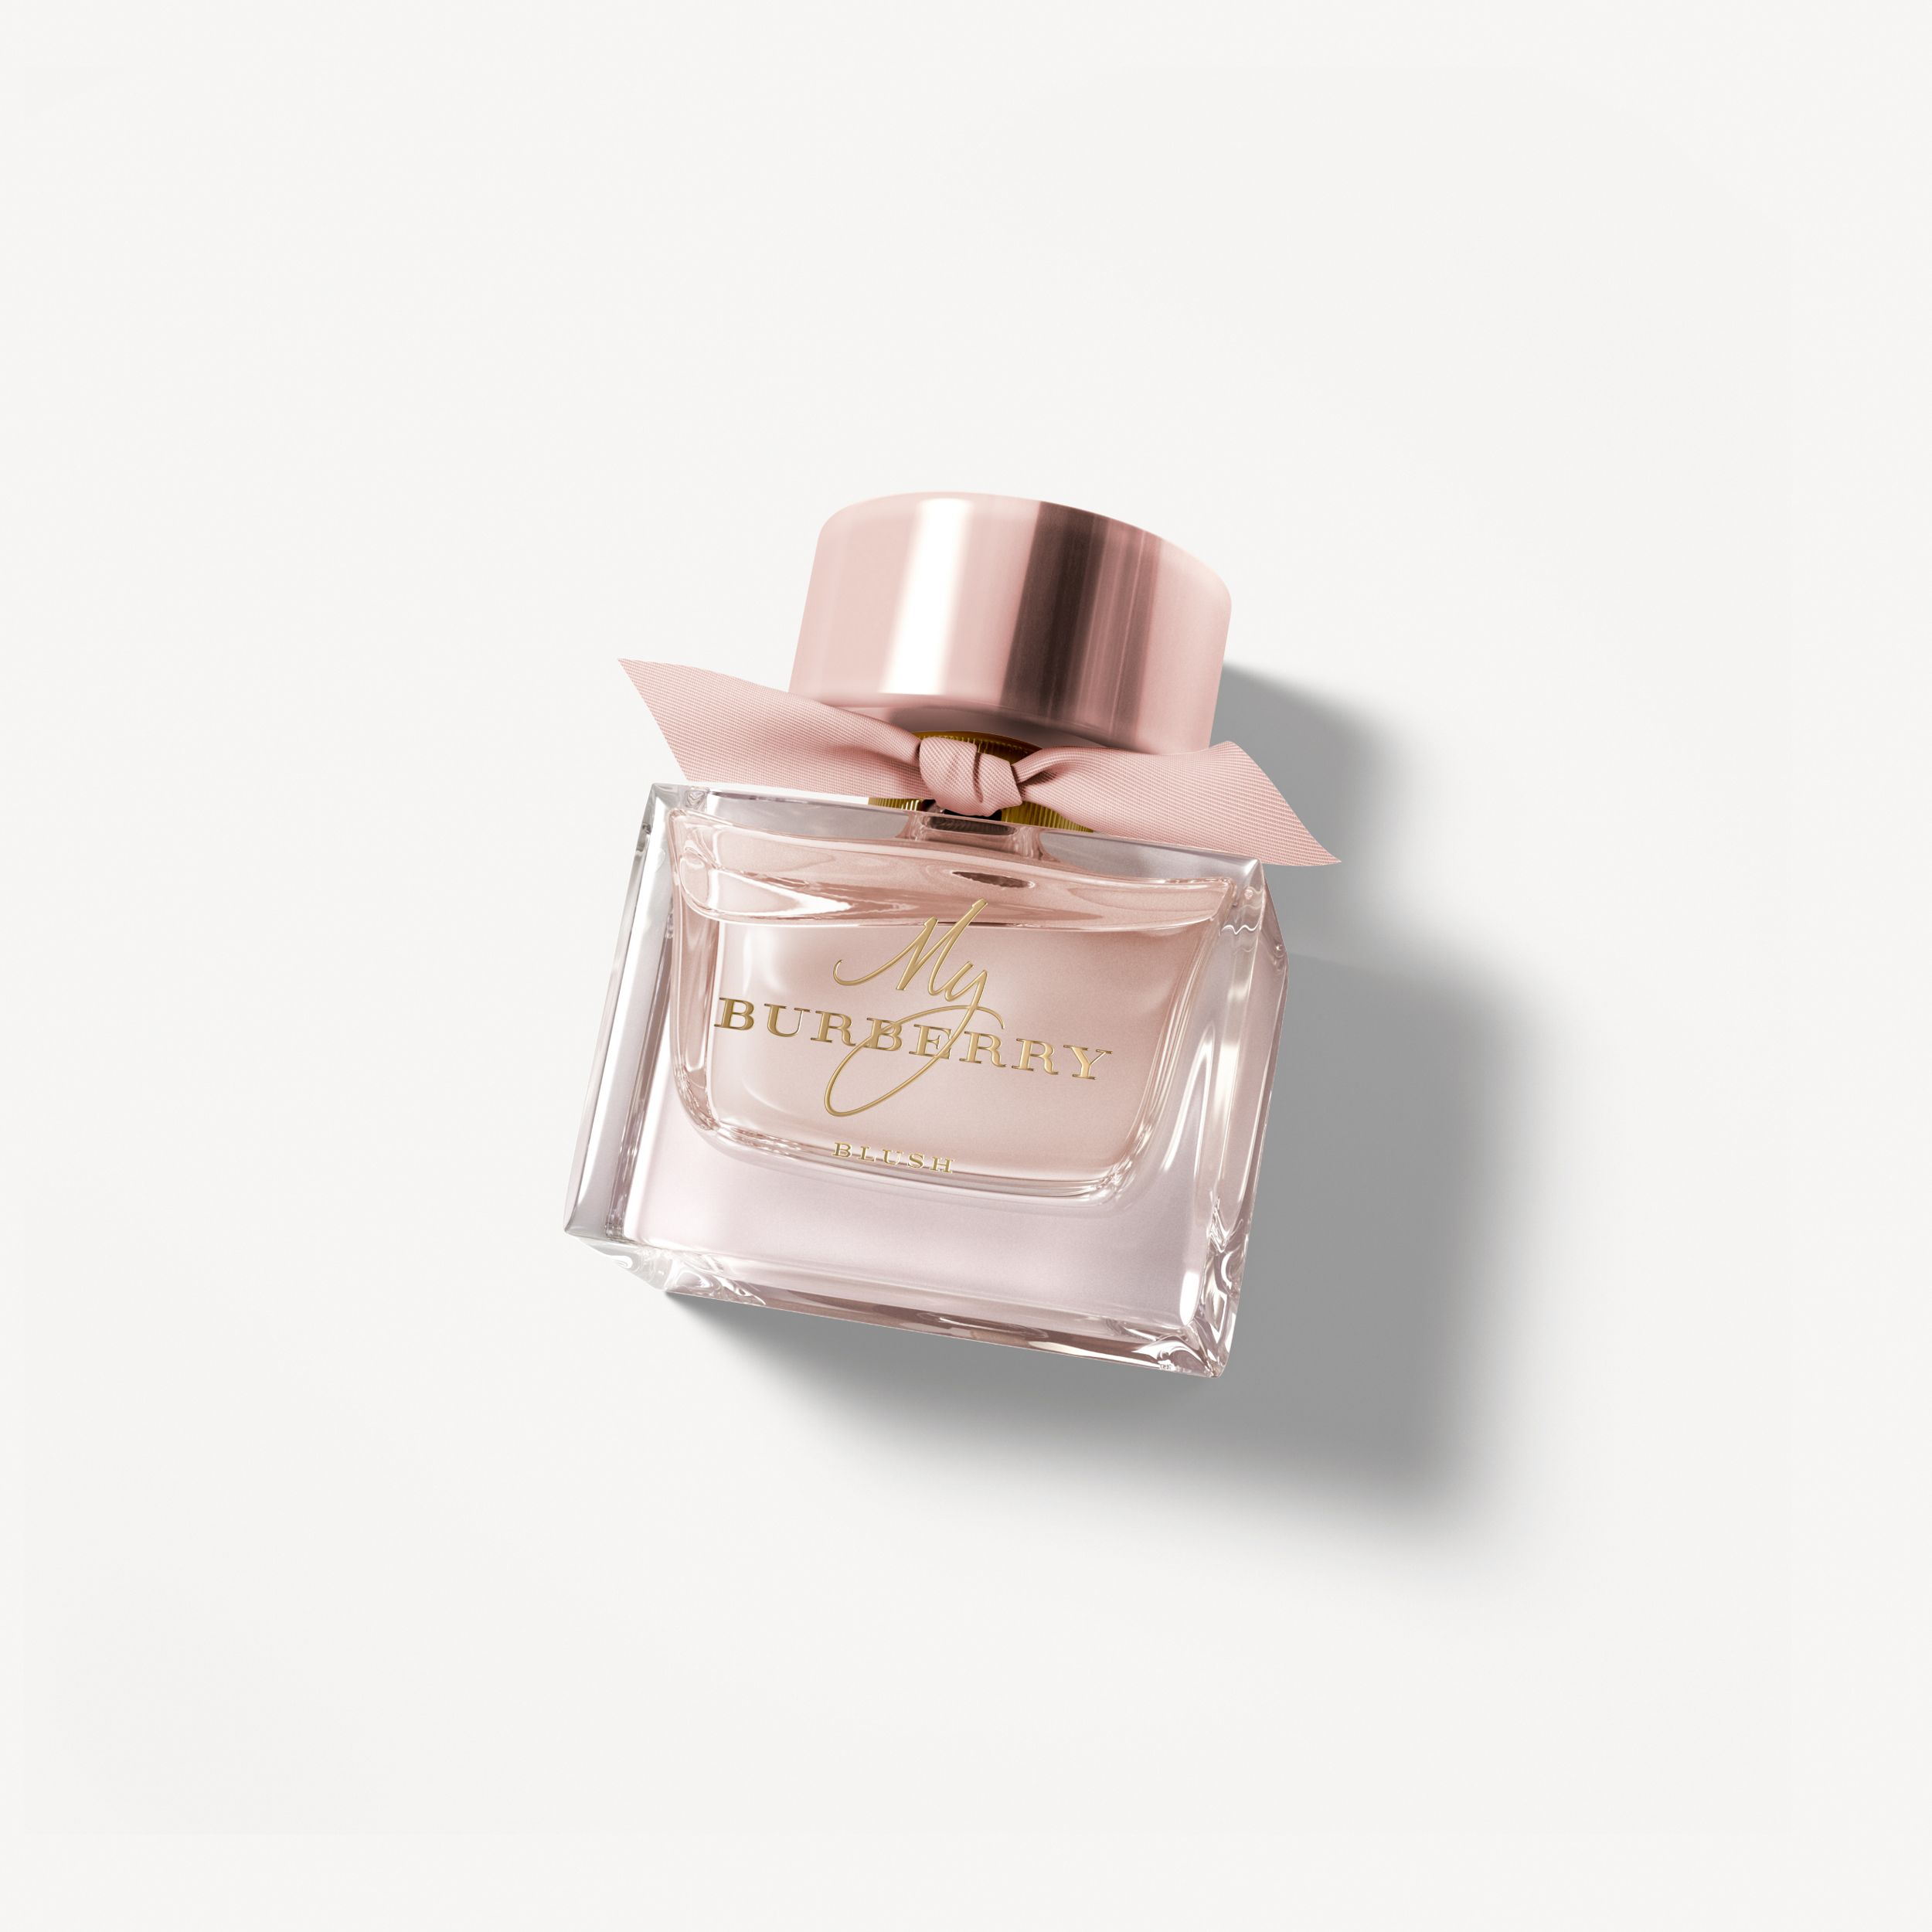 My Burberry Blush Eau de Parfum 90ml - Women | Burberry Australia - 1